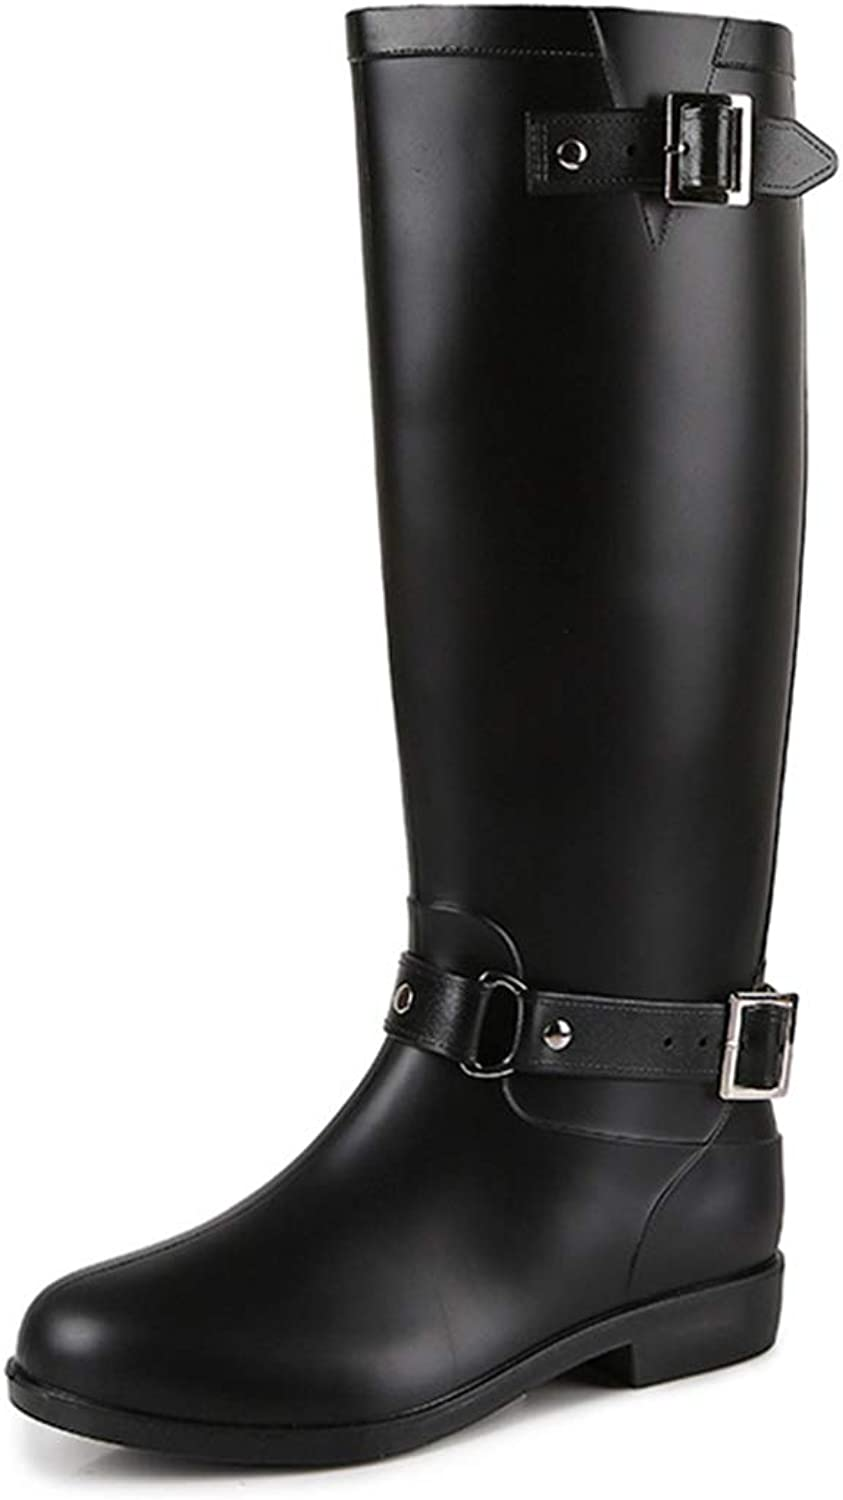 Women Waterproof Anti Slip Buckle Tall Rain Boot Back Zipper Warm Snow Boots